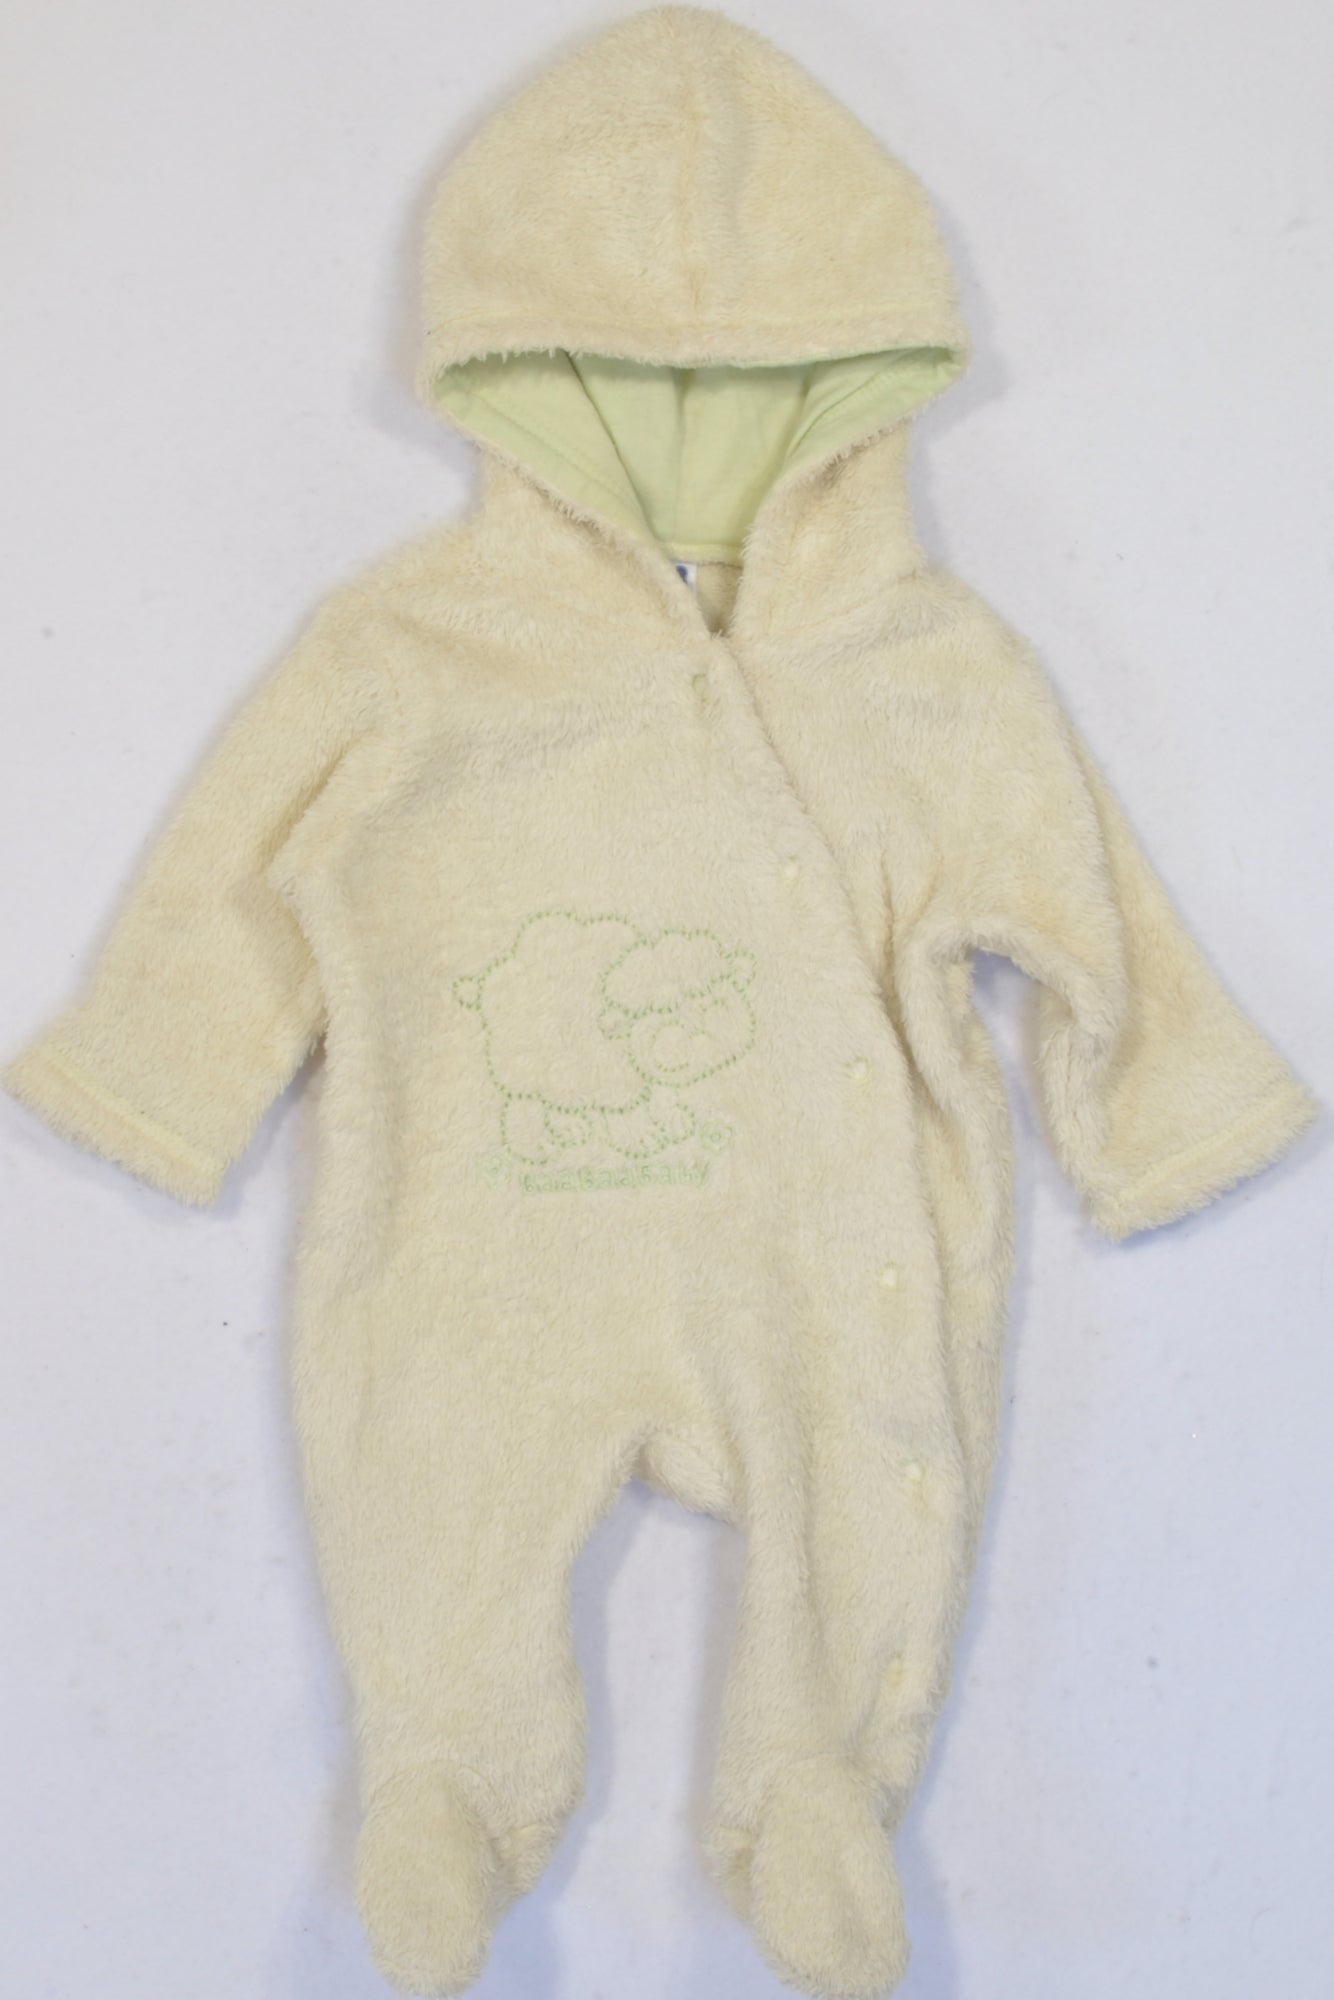 Ackermans Hooded Yellow Furry Fleece Sheep Onesie Unisex N-B